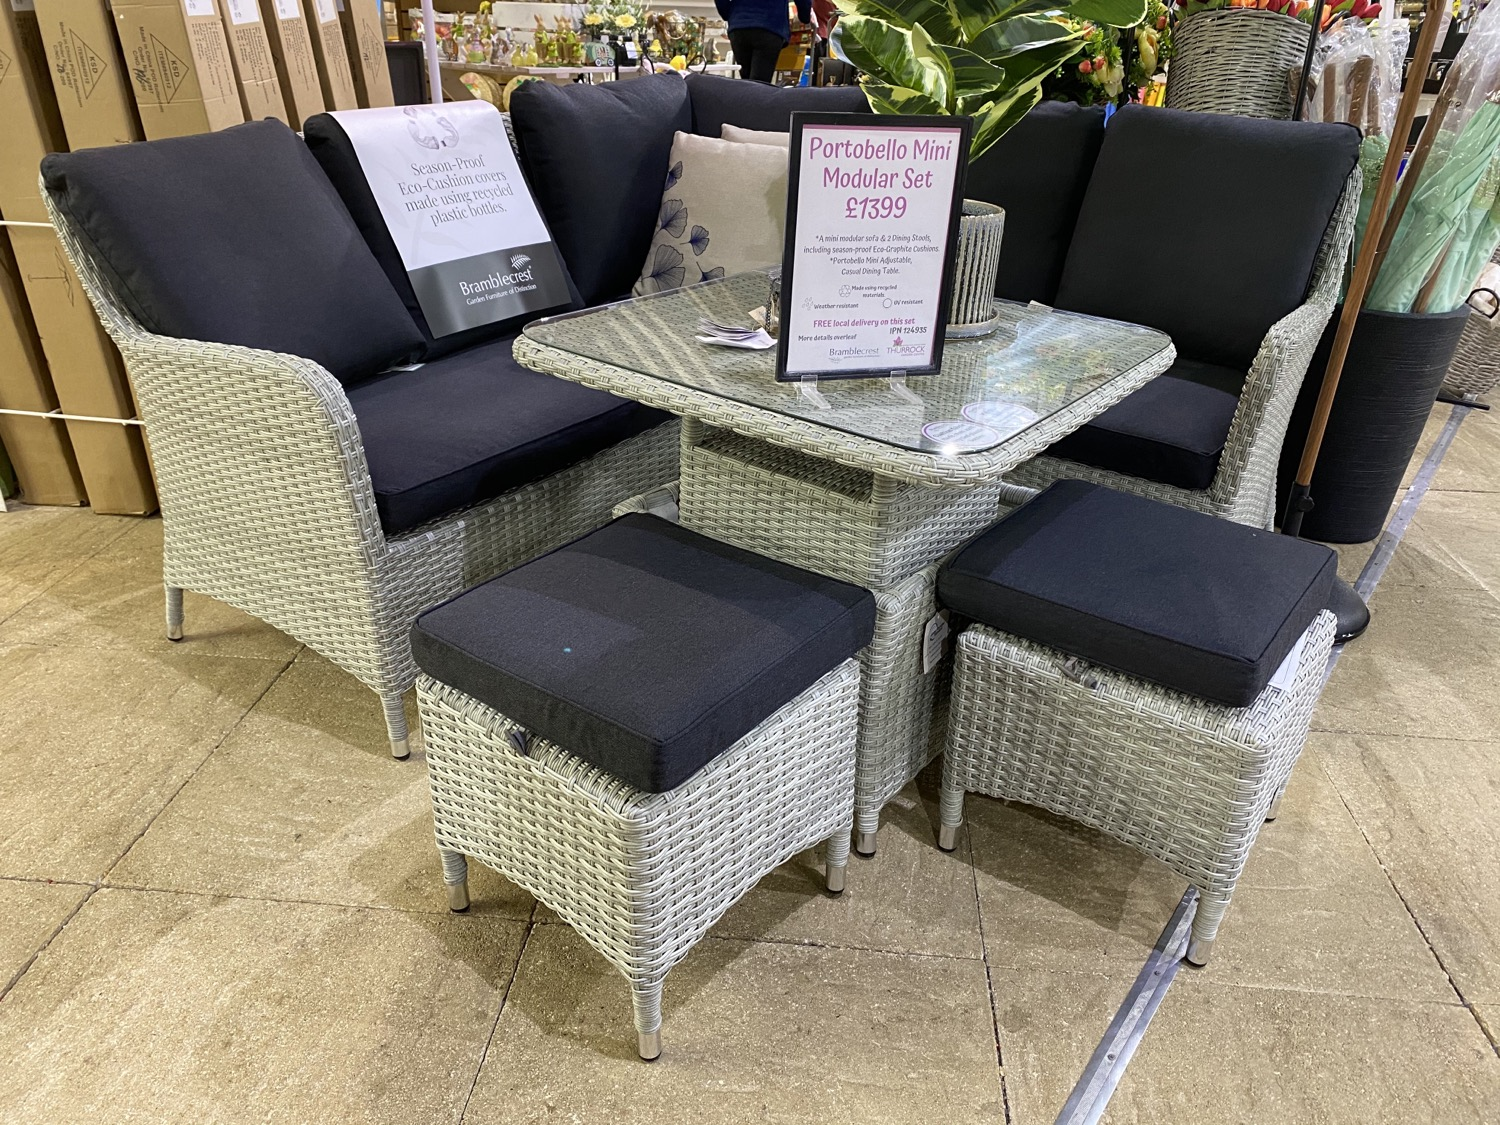 Portobello Mini Modular Set - £1399